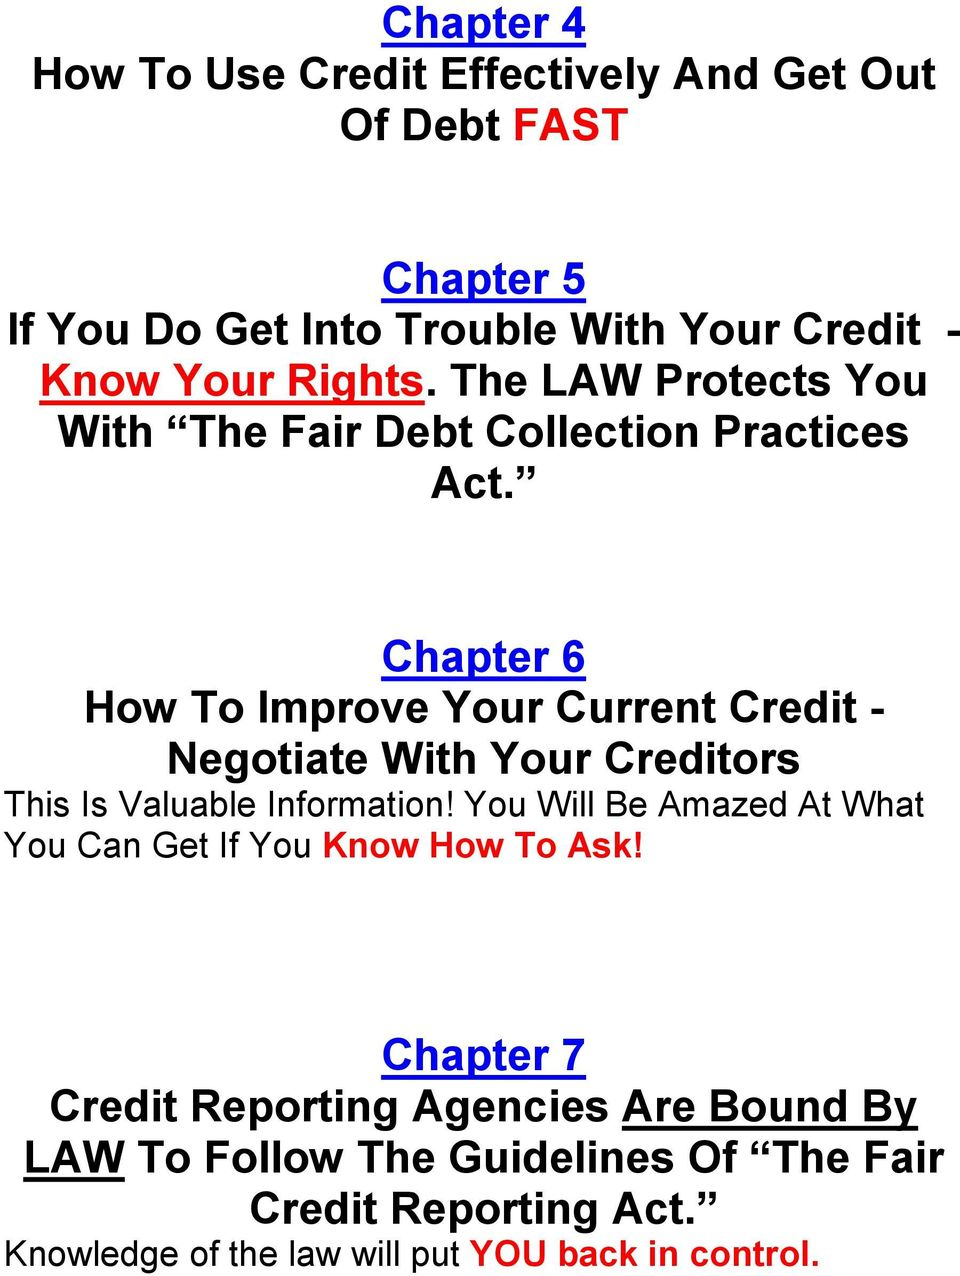 Chapter 6 How To Improve Your Current Credit - Negotiate With Your Creditors This Is Valuable Information!